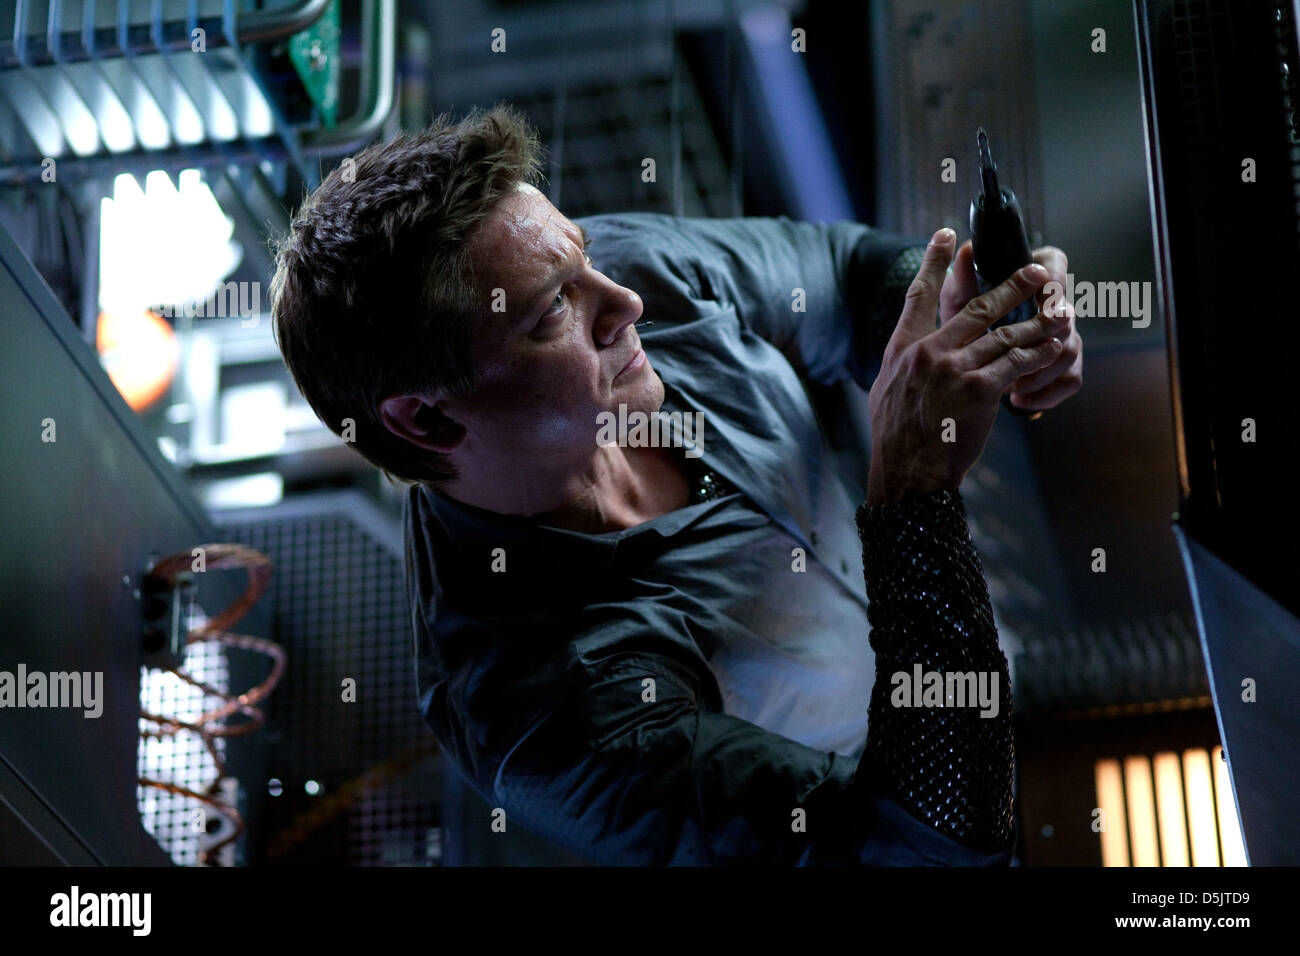 JEREMY RENNER MISSION: IMPOSSIBLE - GHOST PROTOCOL (2011) - Stock Image